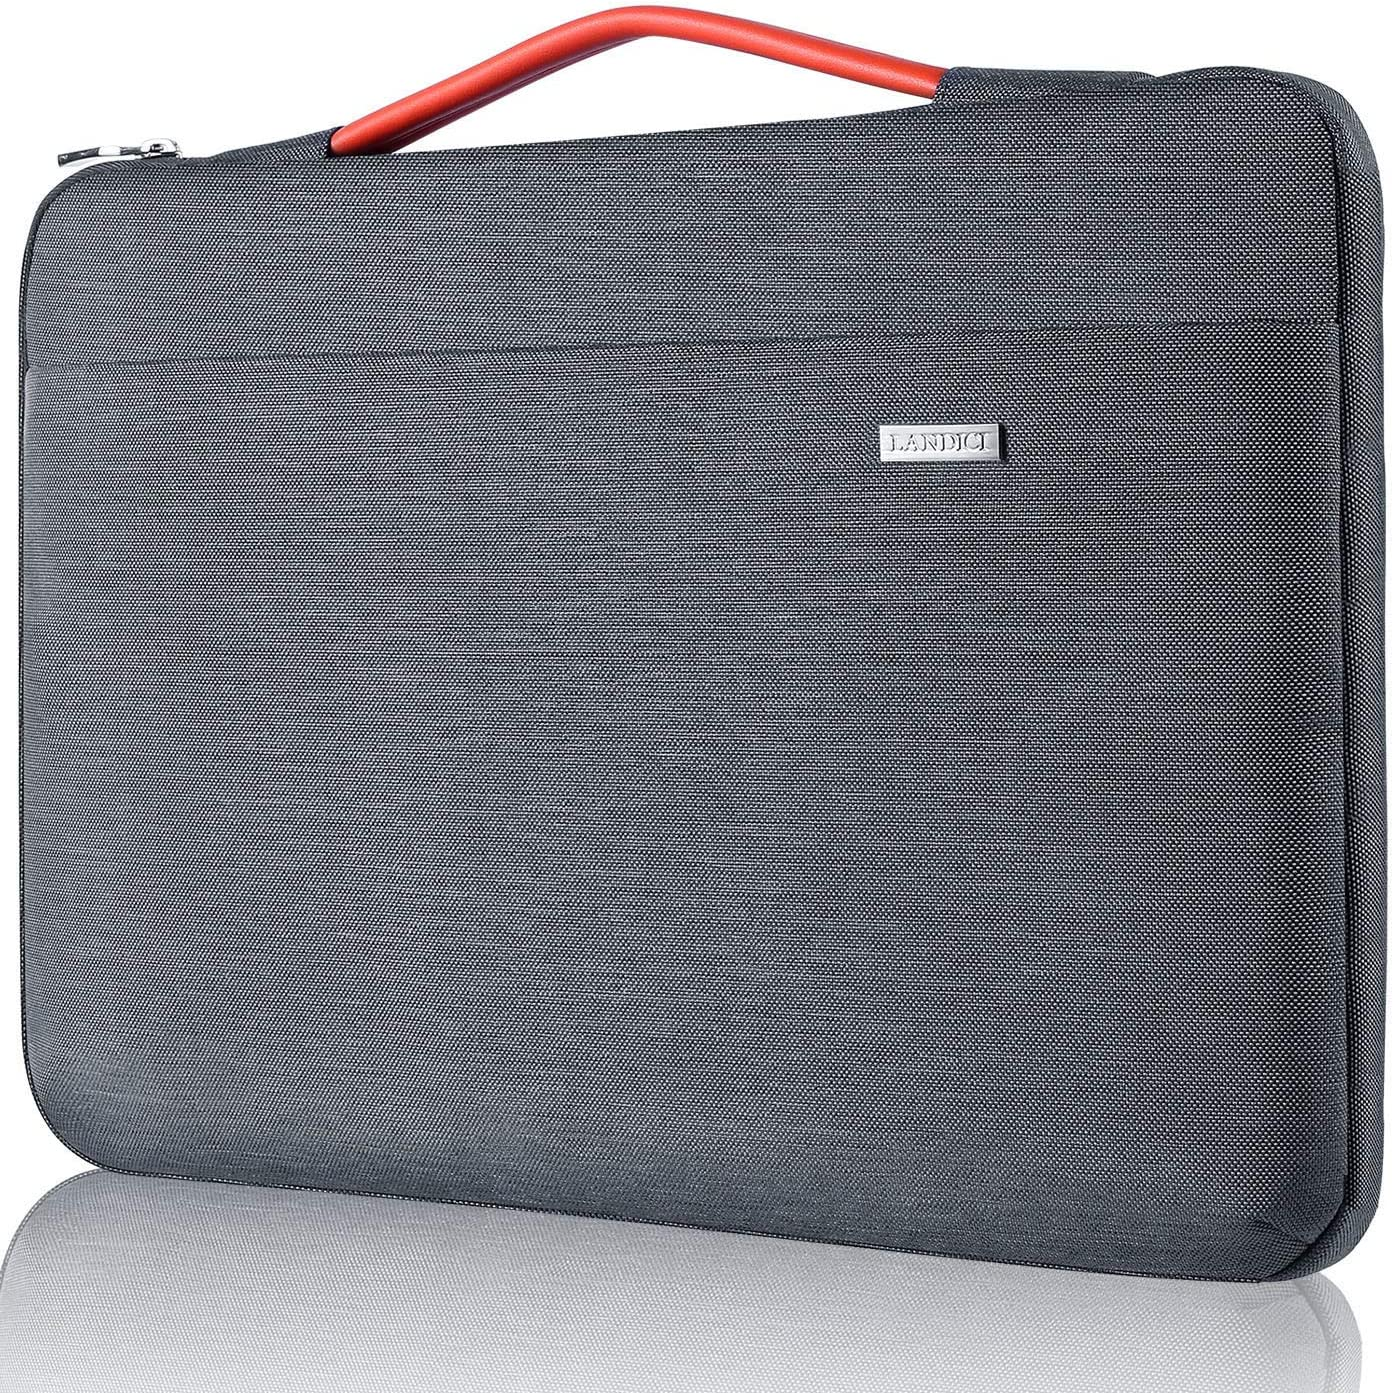 "Landici Laptop Sleeve 13-13.5 Inch Protective Carrying Case Bag Compatible with MacBook Air 13"" 2020,MacBook Pro,XPS 13,HP Chromebook Water Repellent Sleeve Cover with Pockets,Gray"